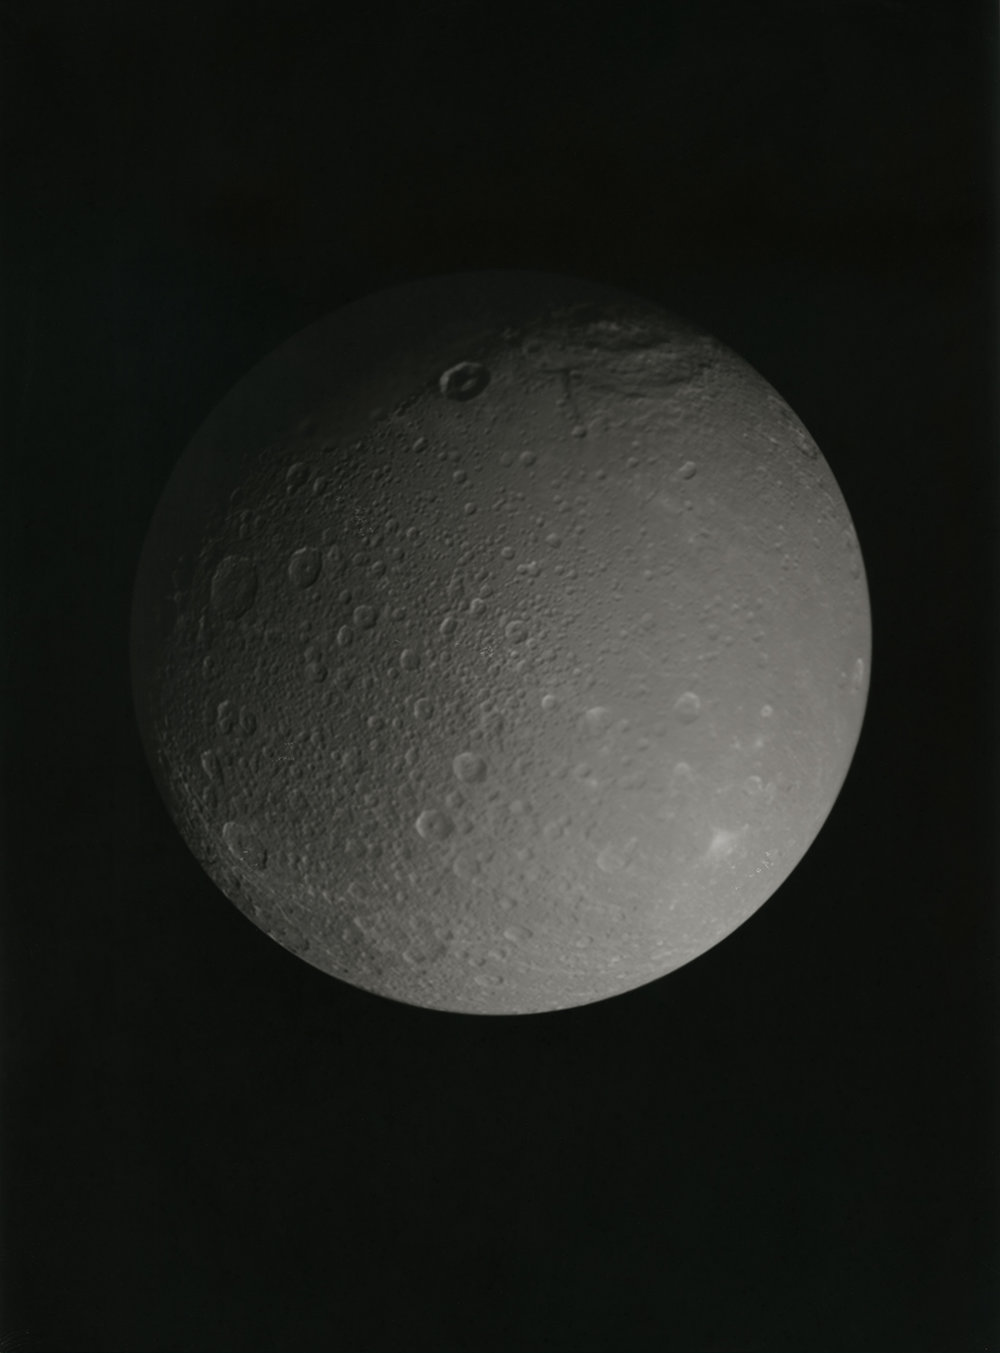 Body 1 - Dione (NASA:JPL:ESA:University of Arizona) Digital Version